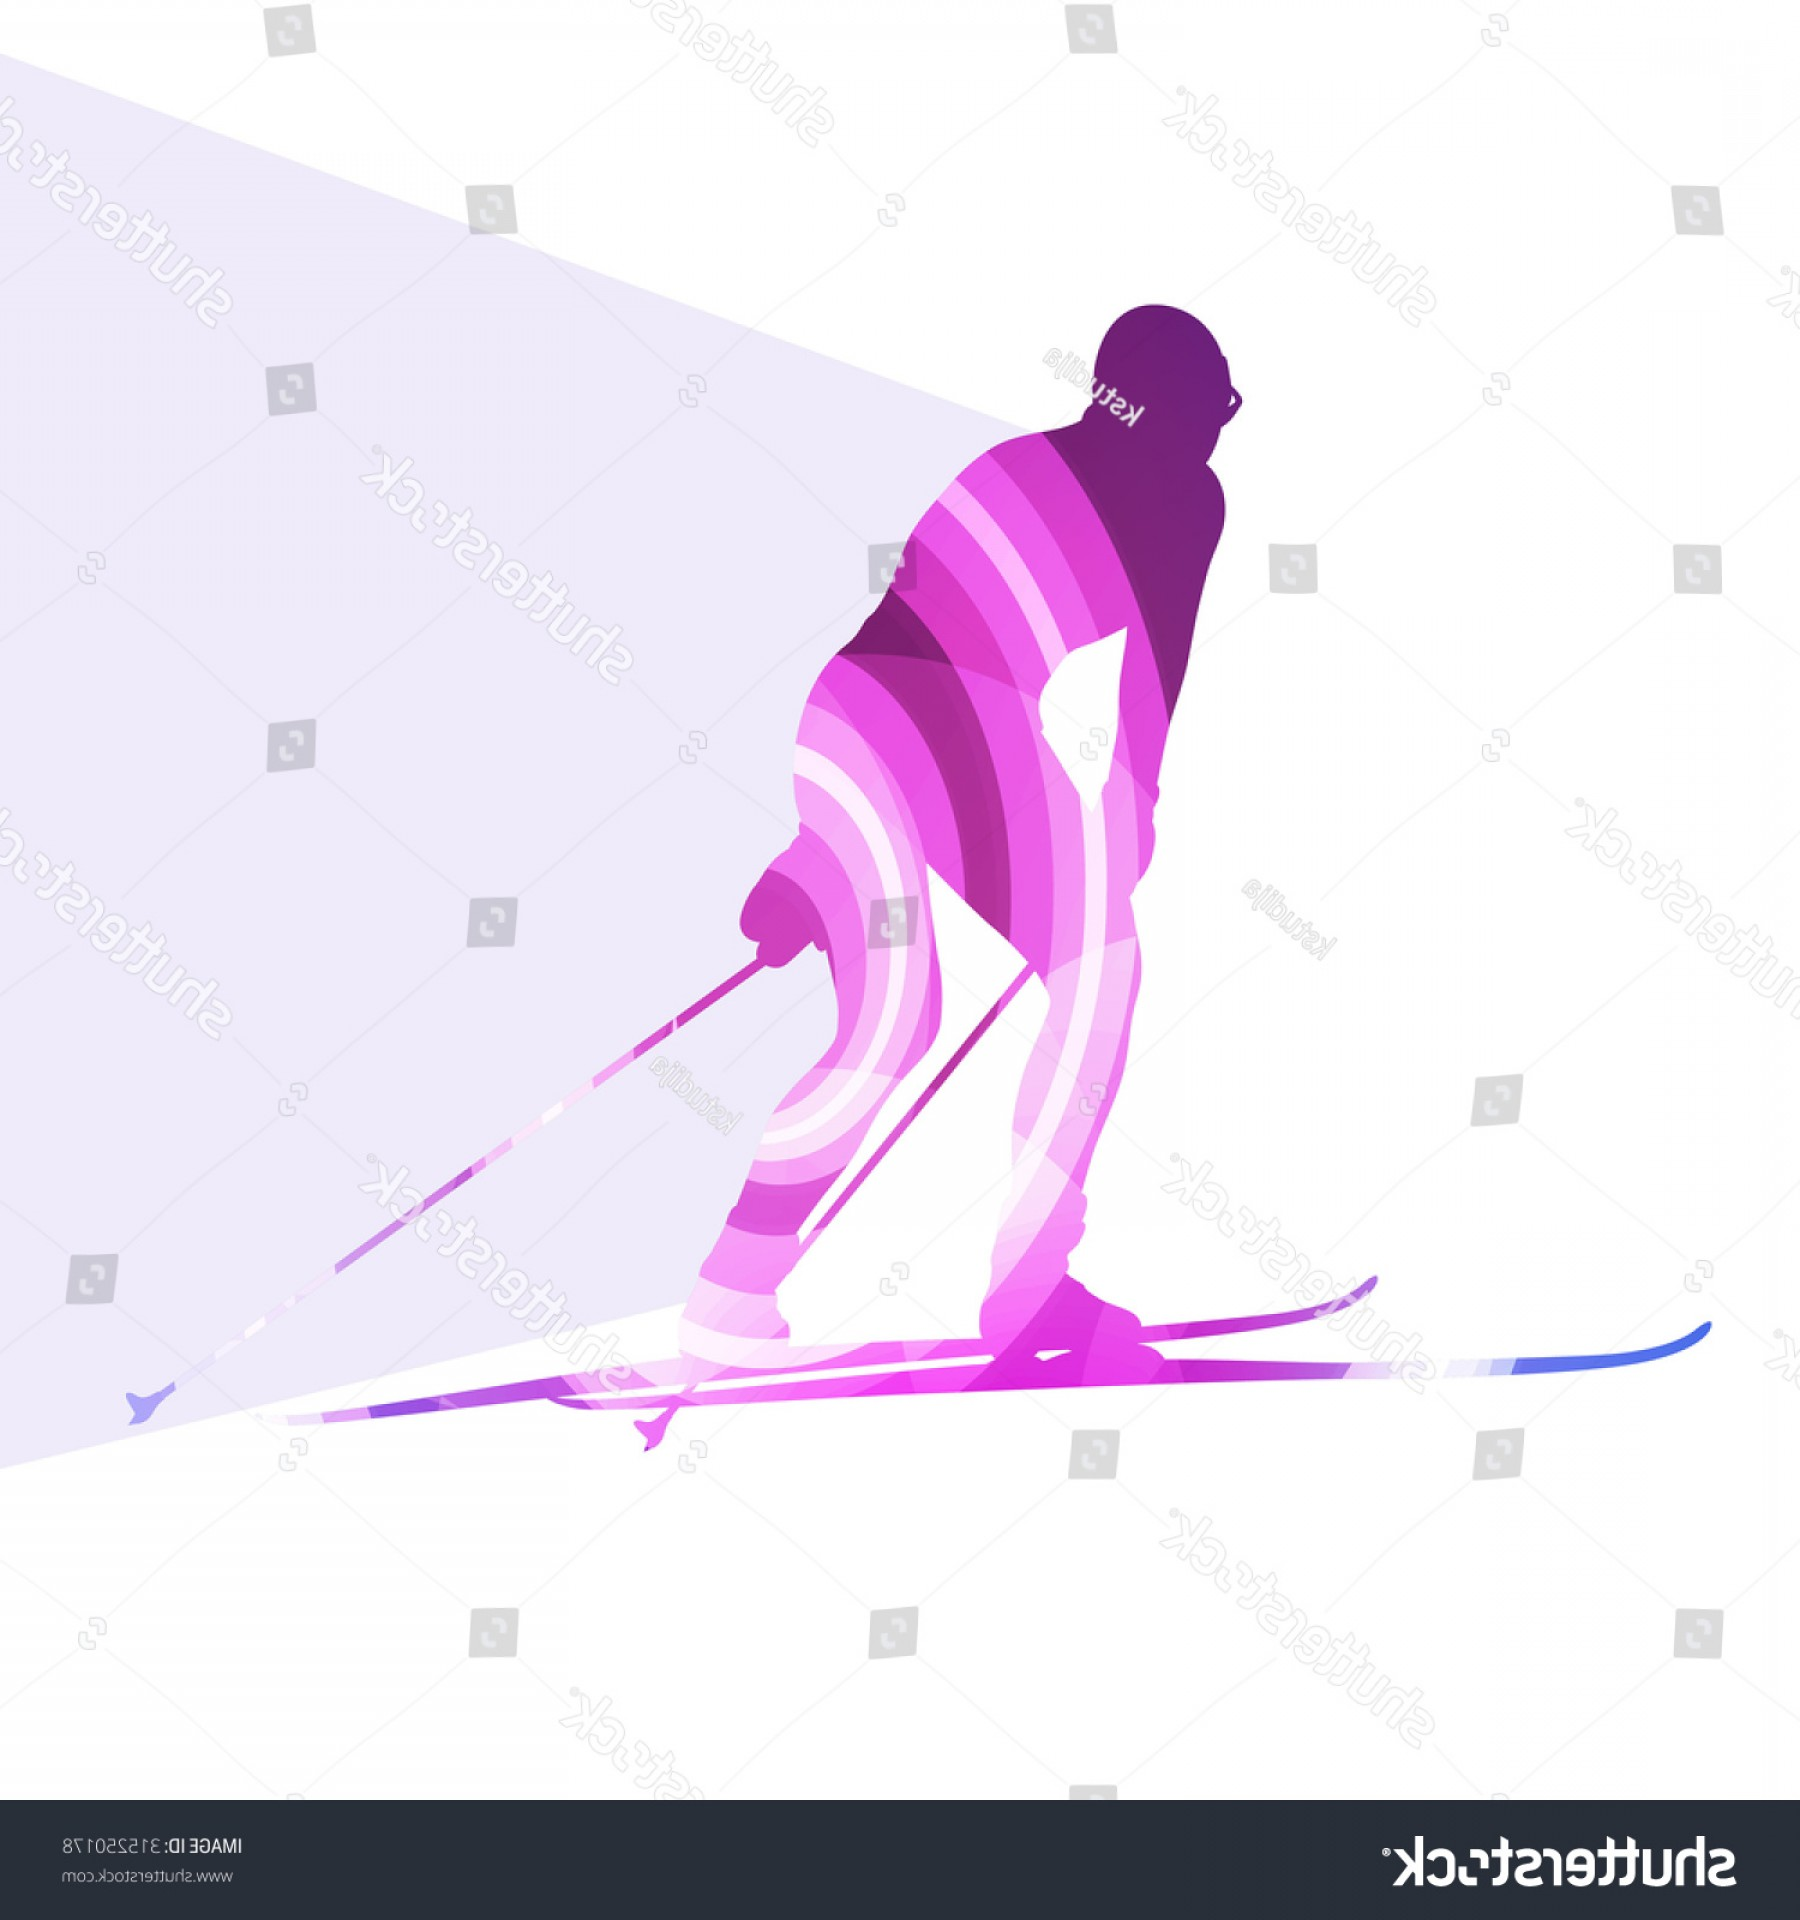 Transparent PNG Vector Skier: Woman On Ski Silhouette Illustration Vector